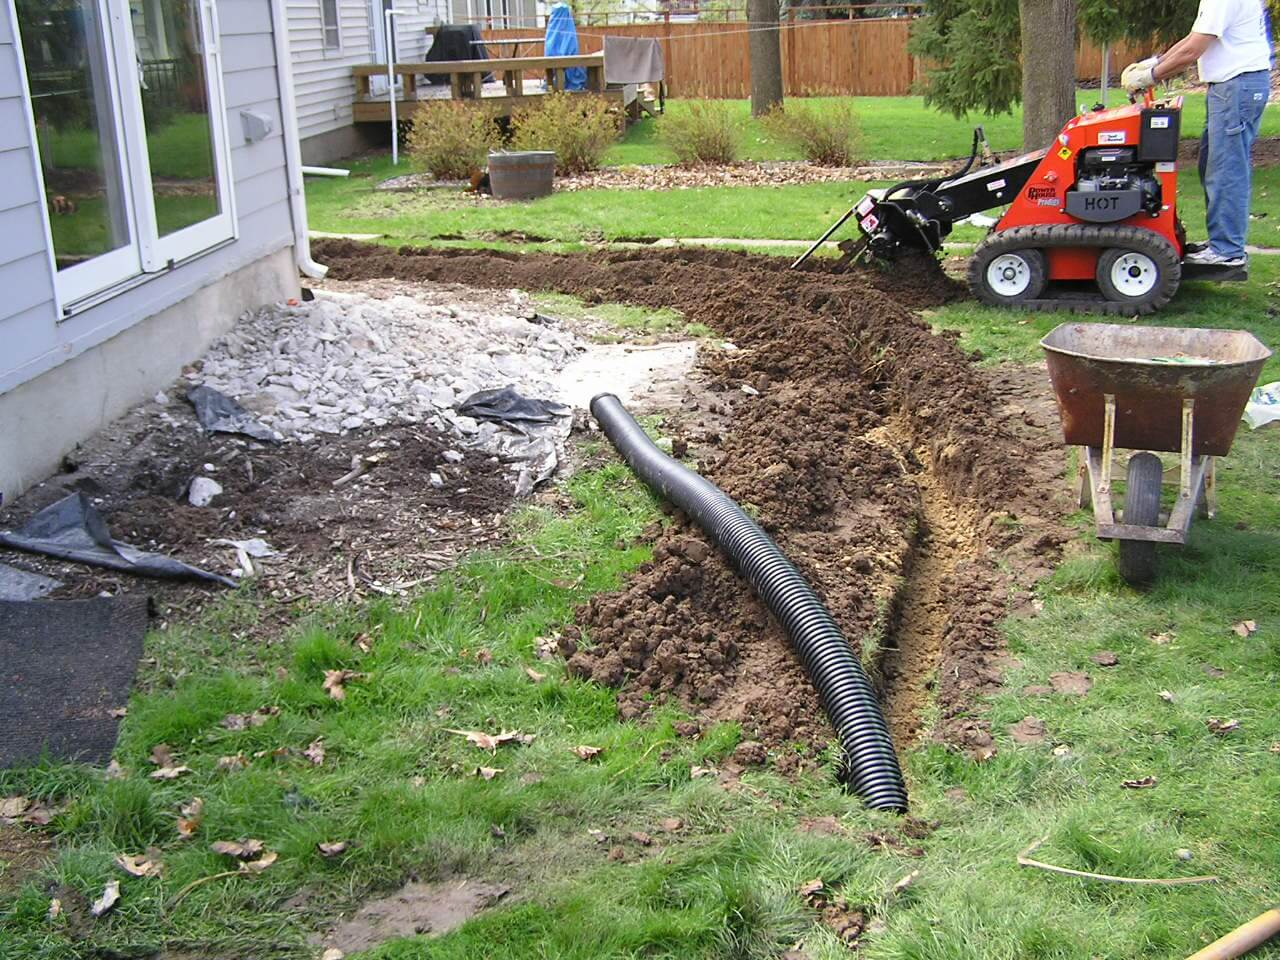 I Rented A Trenching Machine And Ending Up Burying About Seventy Five Feet  Of Corrugated Plastic Drain Tubing In My Yard, And Terminated The Tubing At  The ...